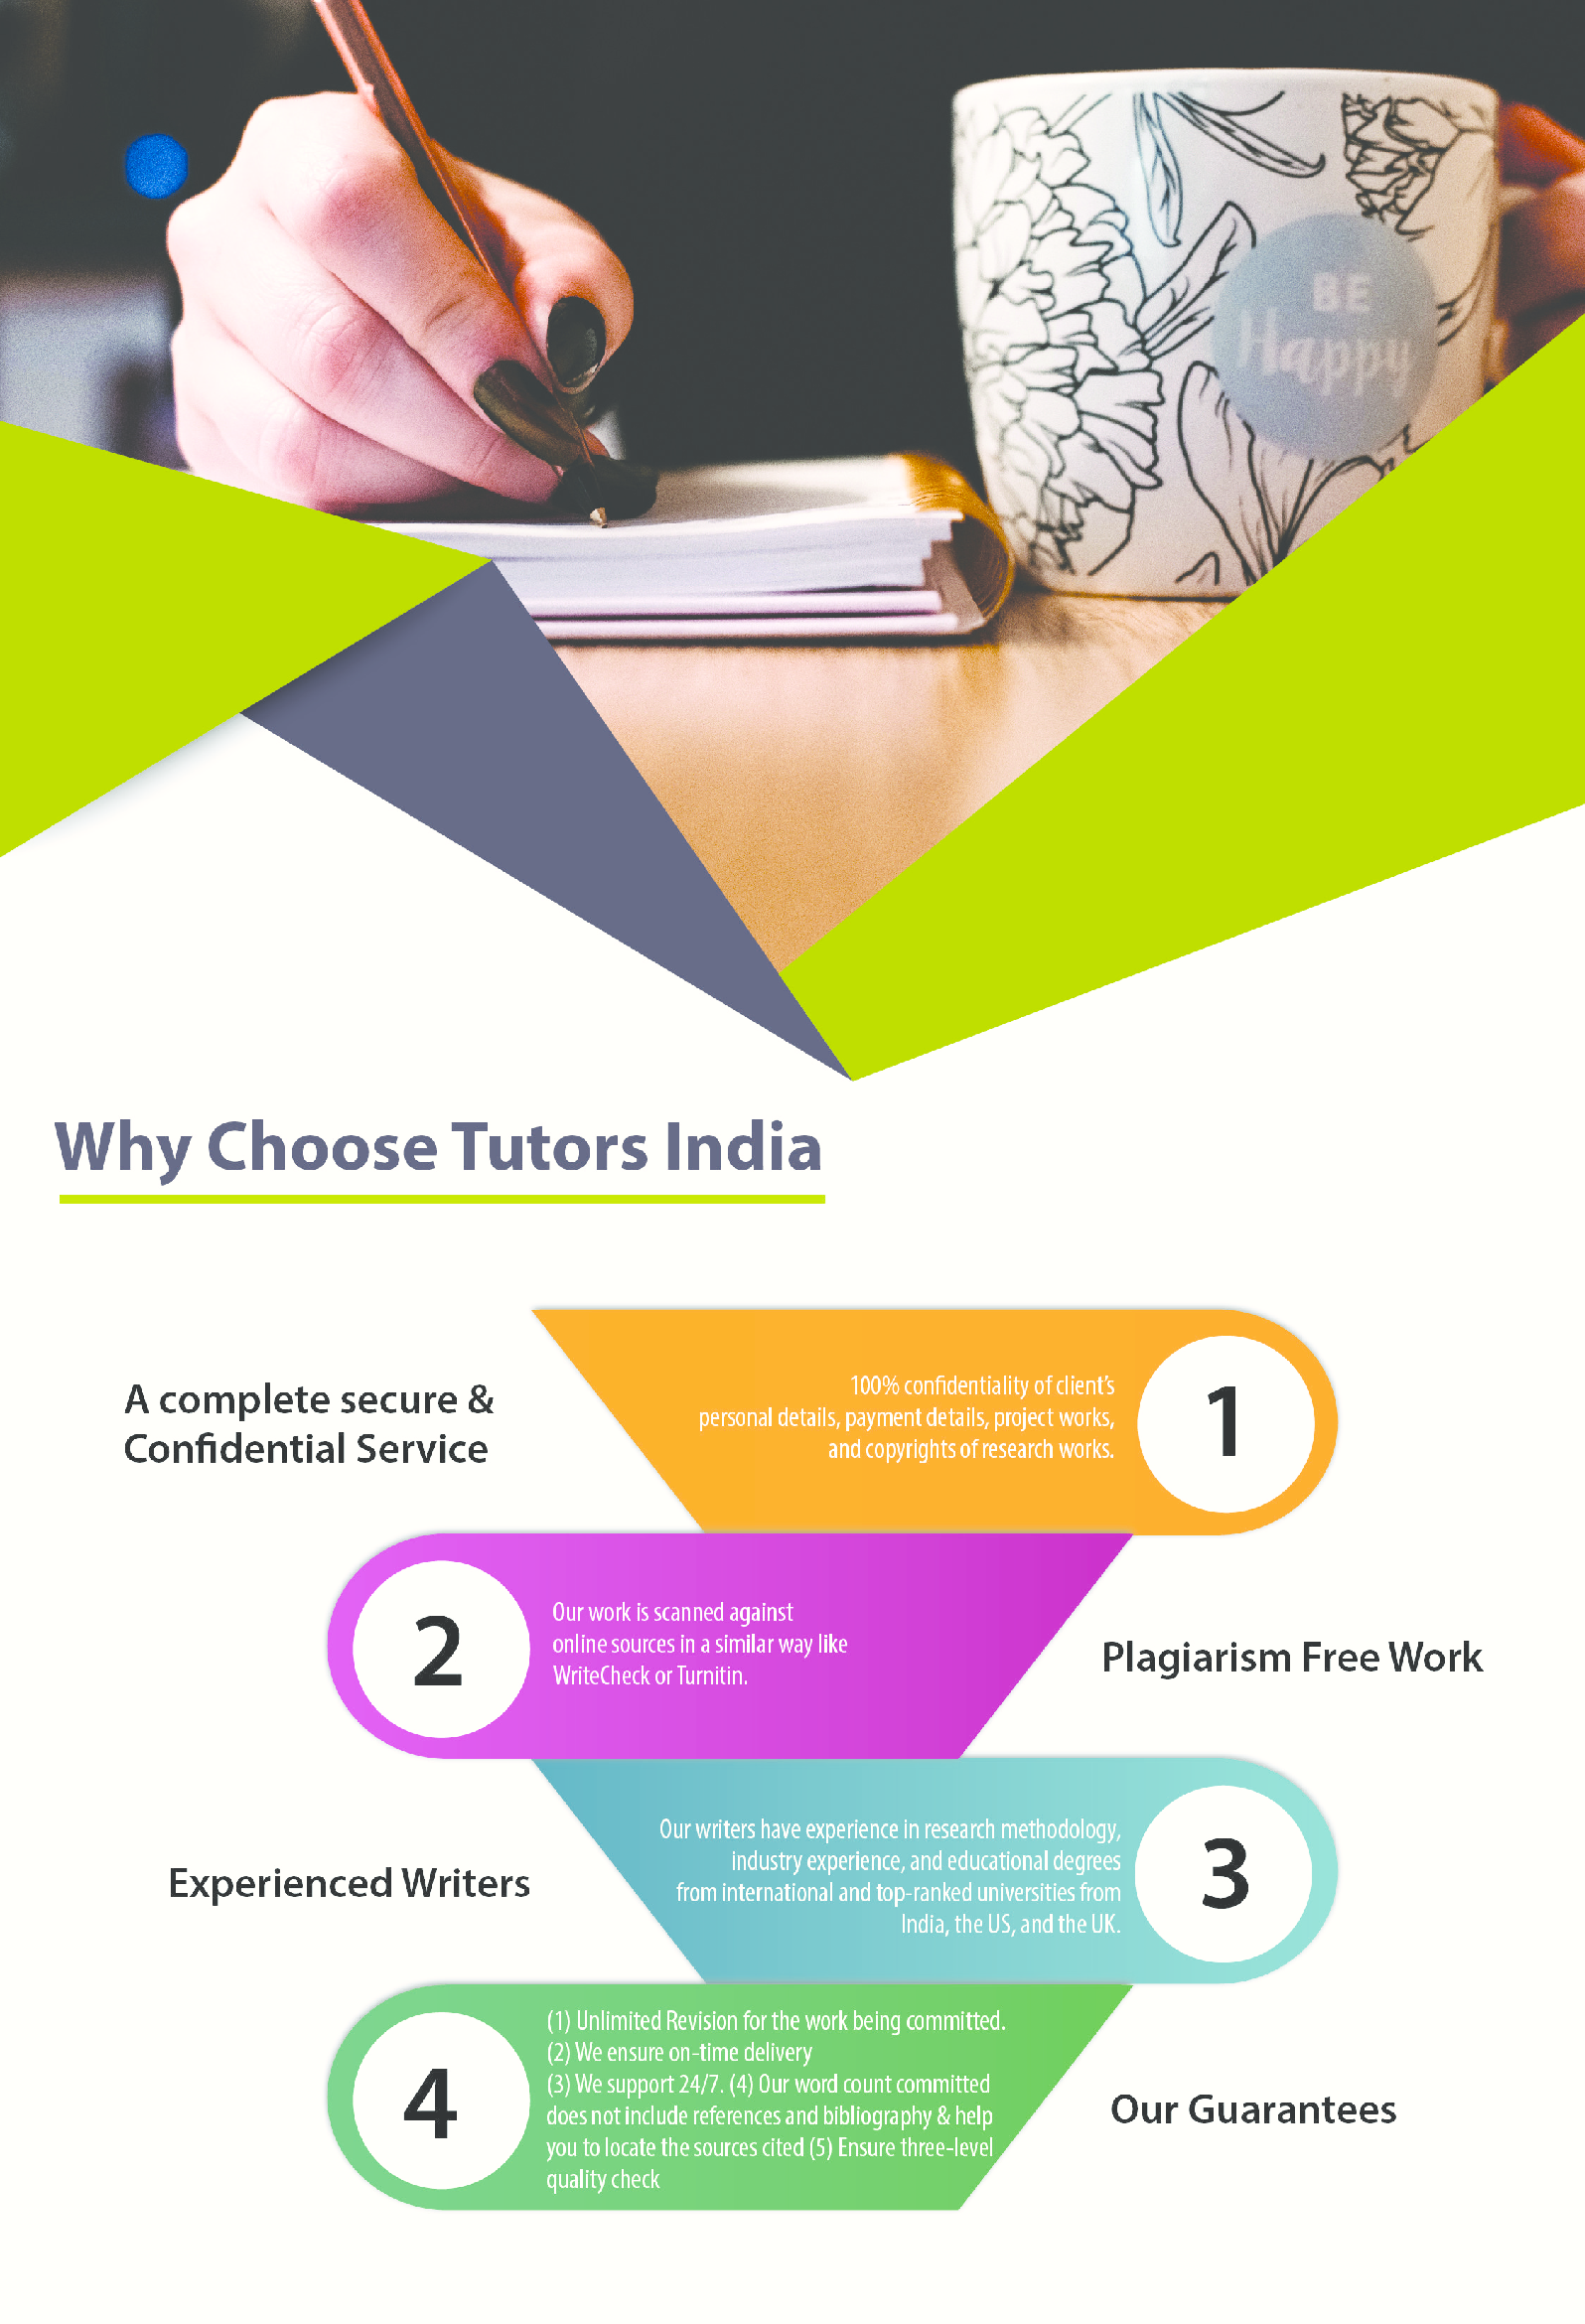 Master Dissertation Proposal Writing Service Uk Contact 44 1143520021 India 91 8754446690 Email Thesi On Education In